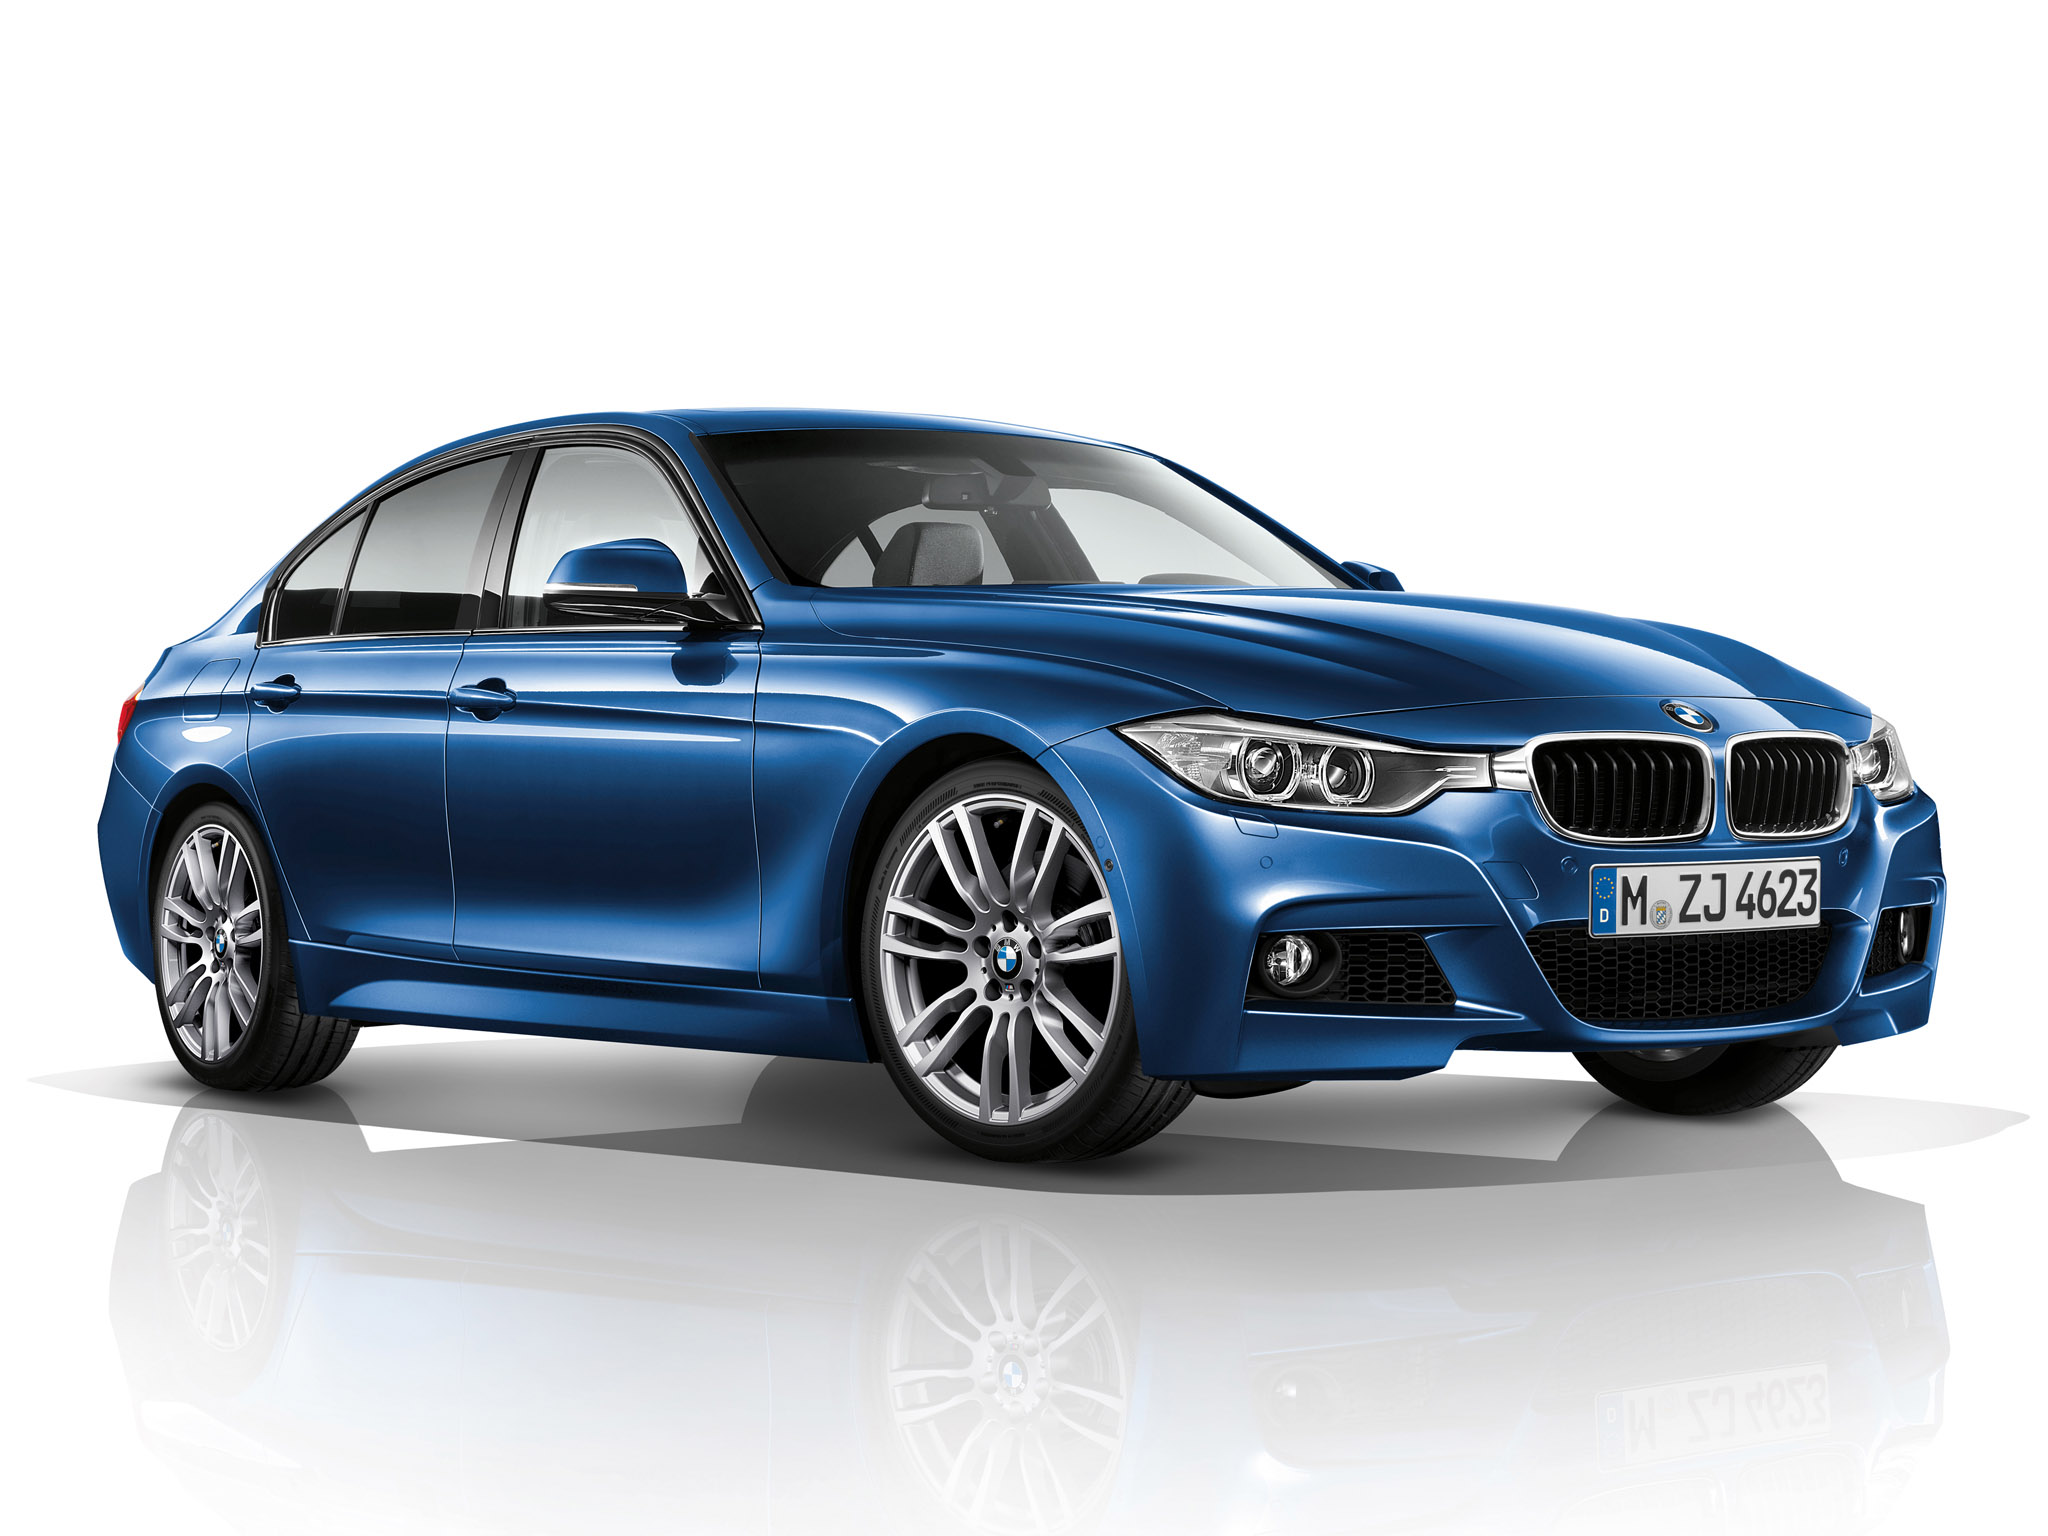 bmw 3 series m sportpaket f30 2012 bmw wallpaper. Black Bedroom Furniture Sets. Home Design Ideas